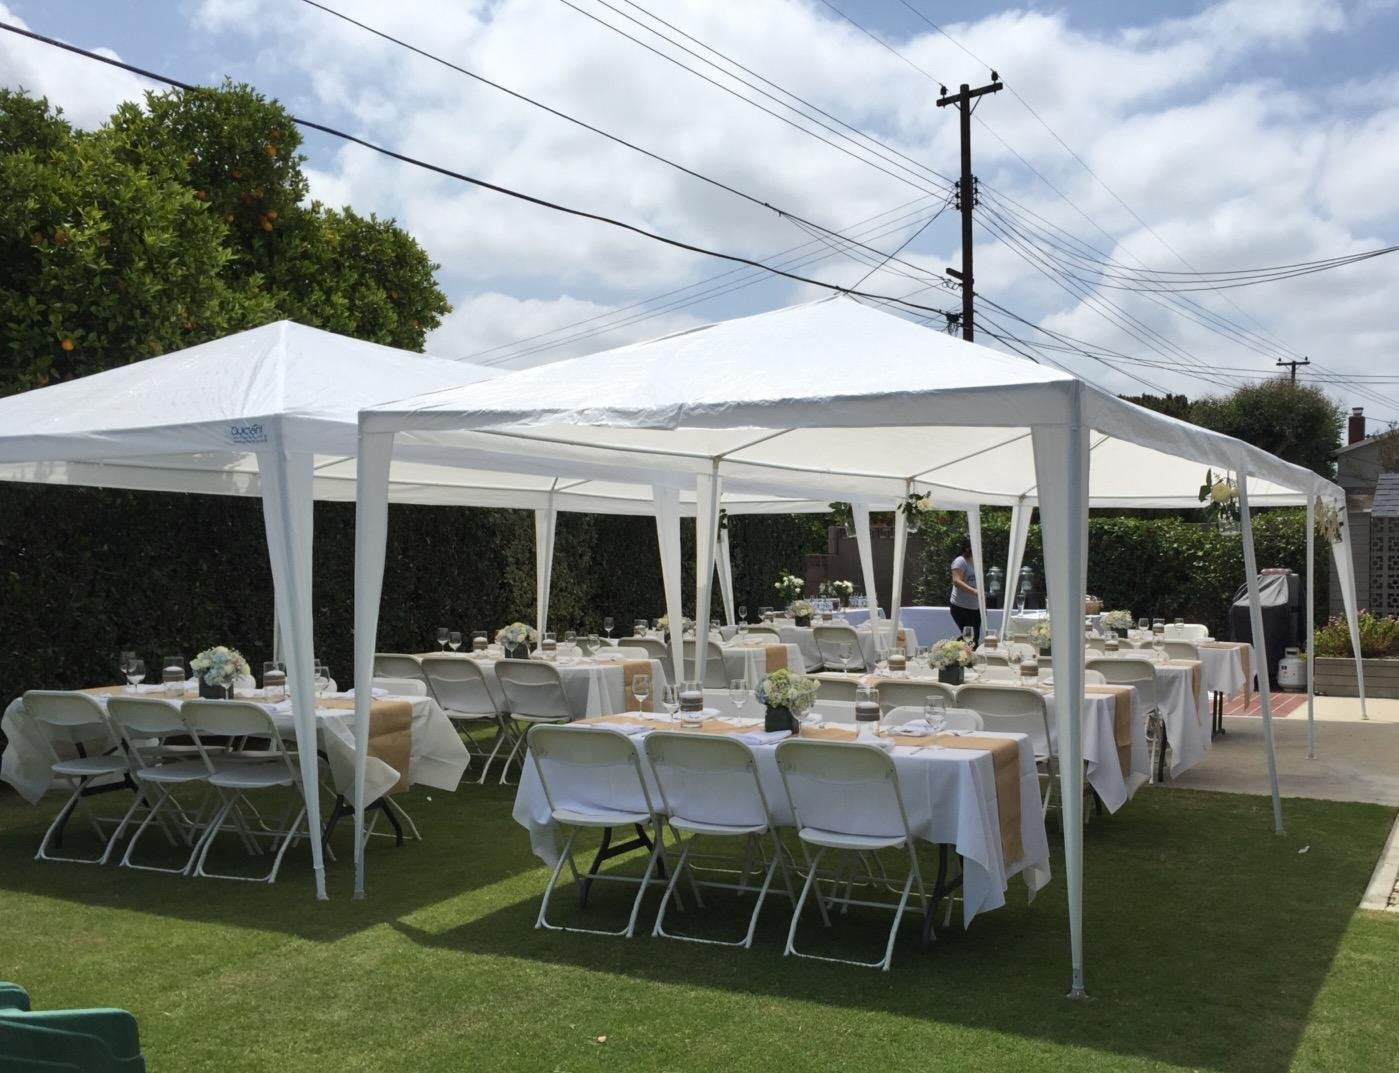 Amazon.com  Quictent 10 x 30 Outdoor Gazebo Wedding Party Tent Canopy With Removable Sidewalls u0026 Elegant Church Window  Family Tents  Garden u0026 Outdoor & Amazon.com : Quictent 10 x 30 Outdoor Gazebo Wedding Party Tent ...